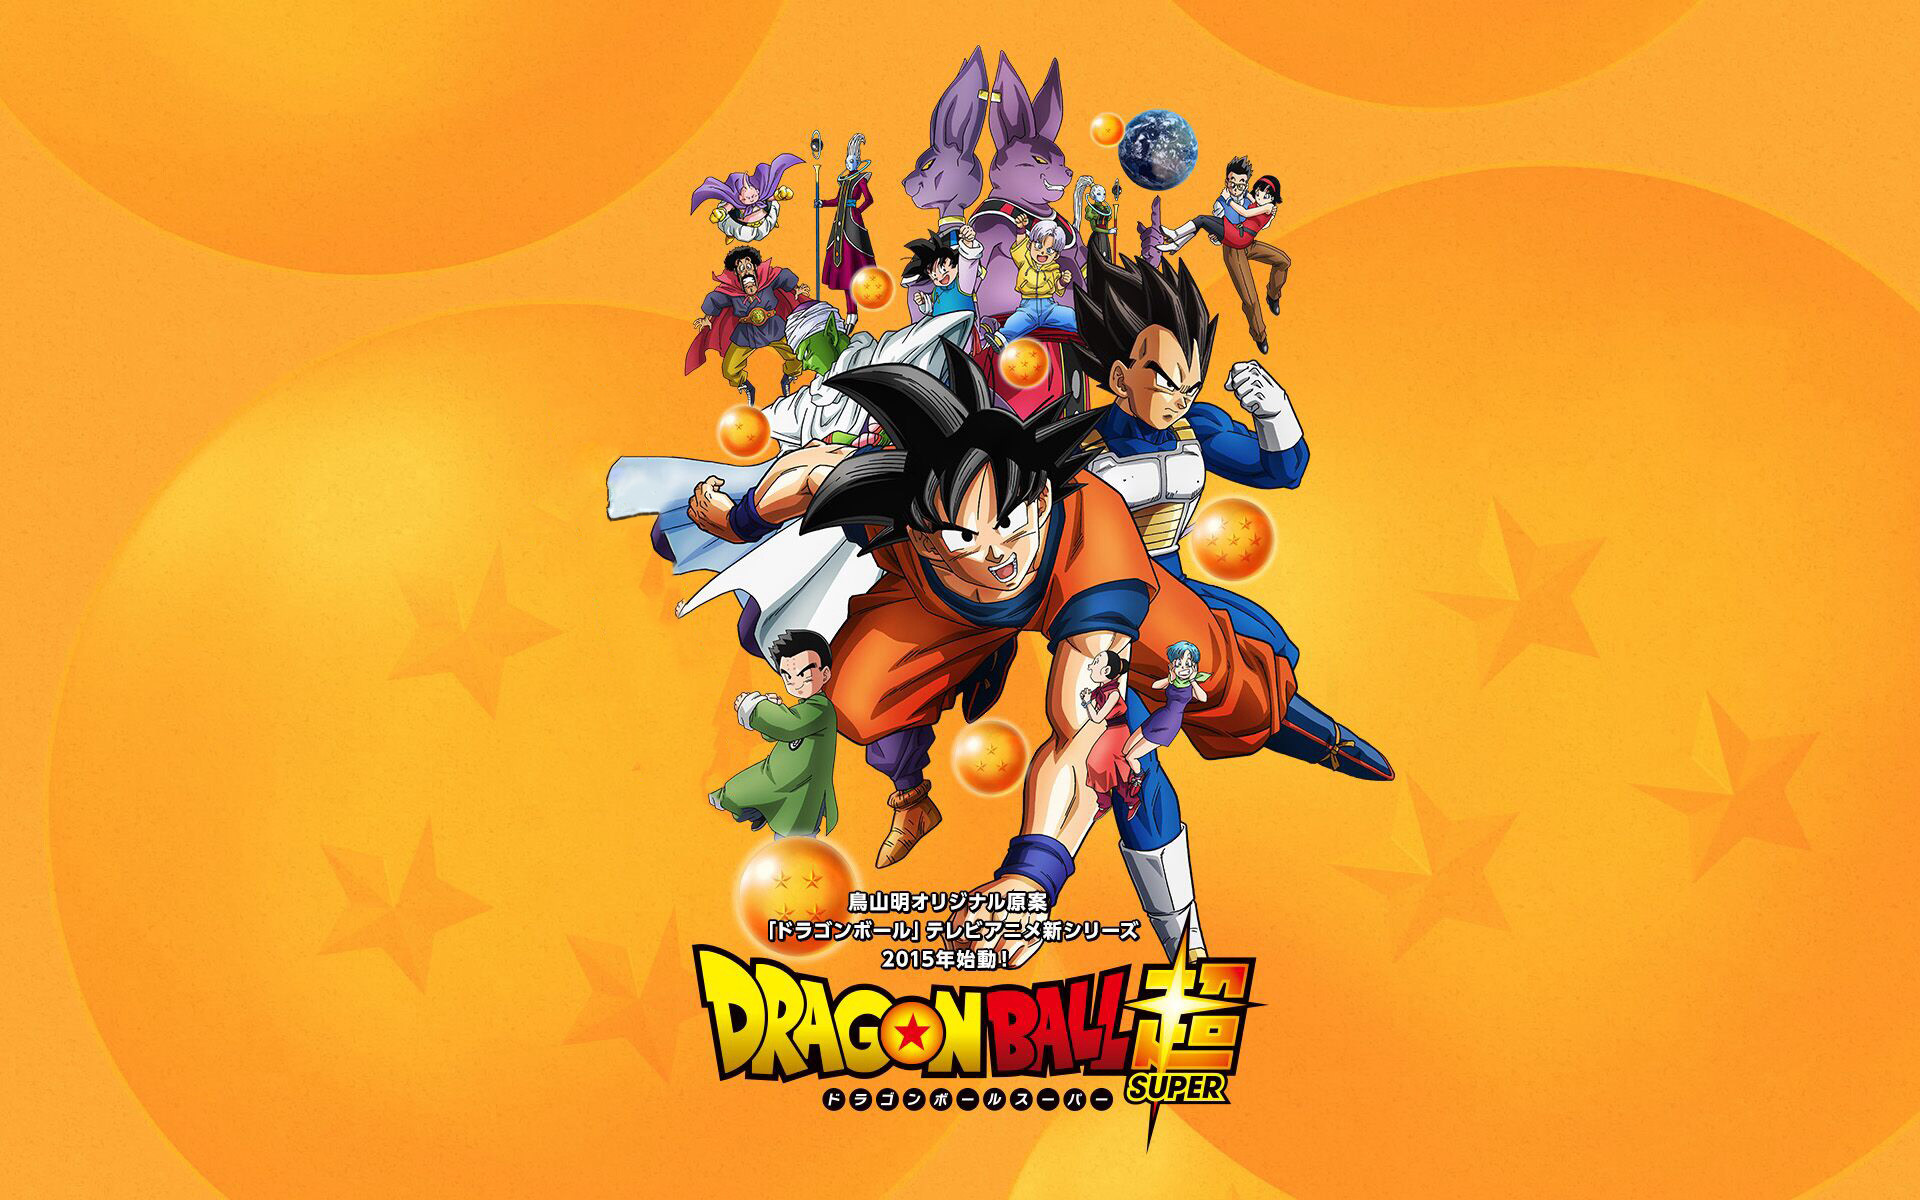 Check out our gallery with 50 amazing wallpapers of the newest success of  the Dragon Ball franchise.